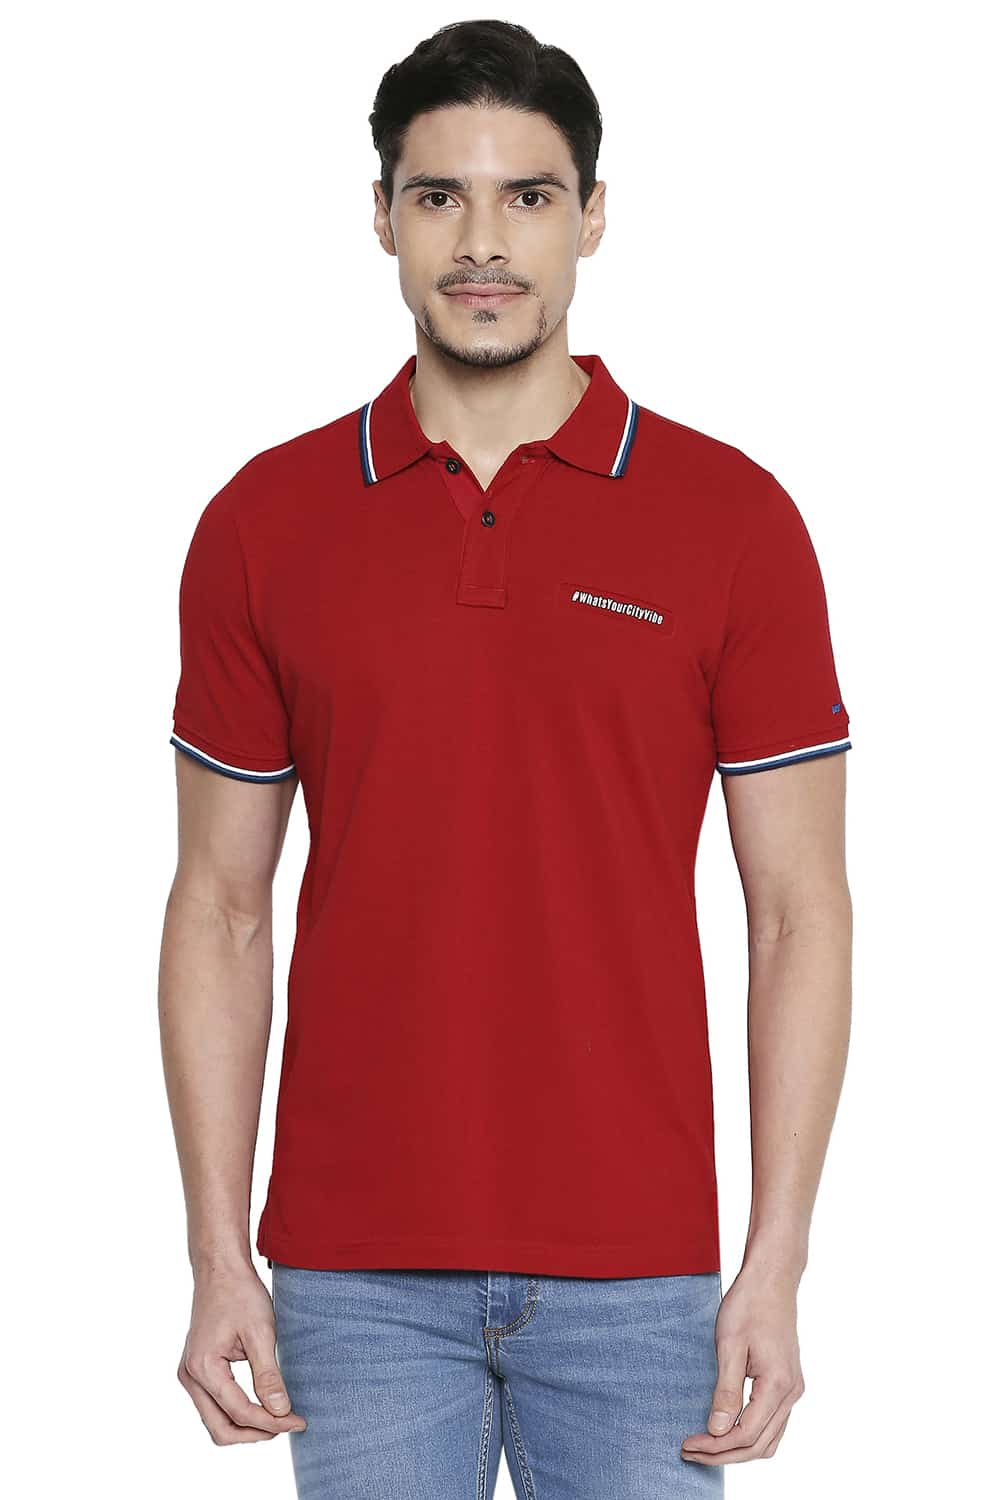 Basics | Basics Muscle Fit Scooter Red Polo T Shirt